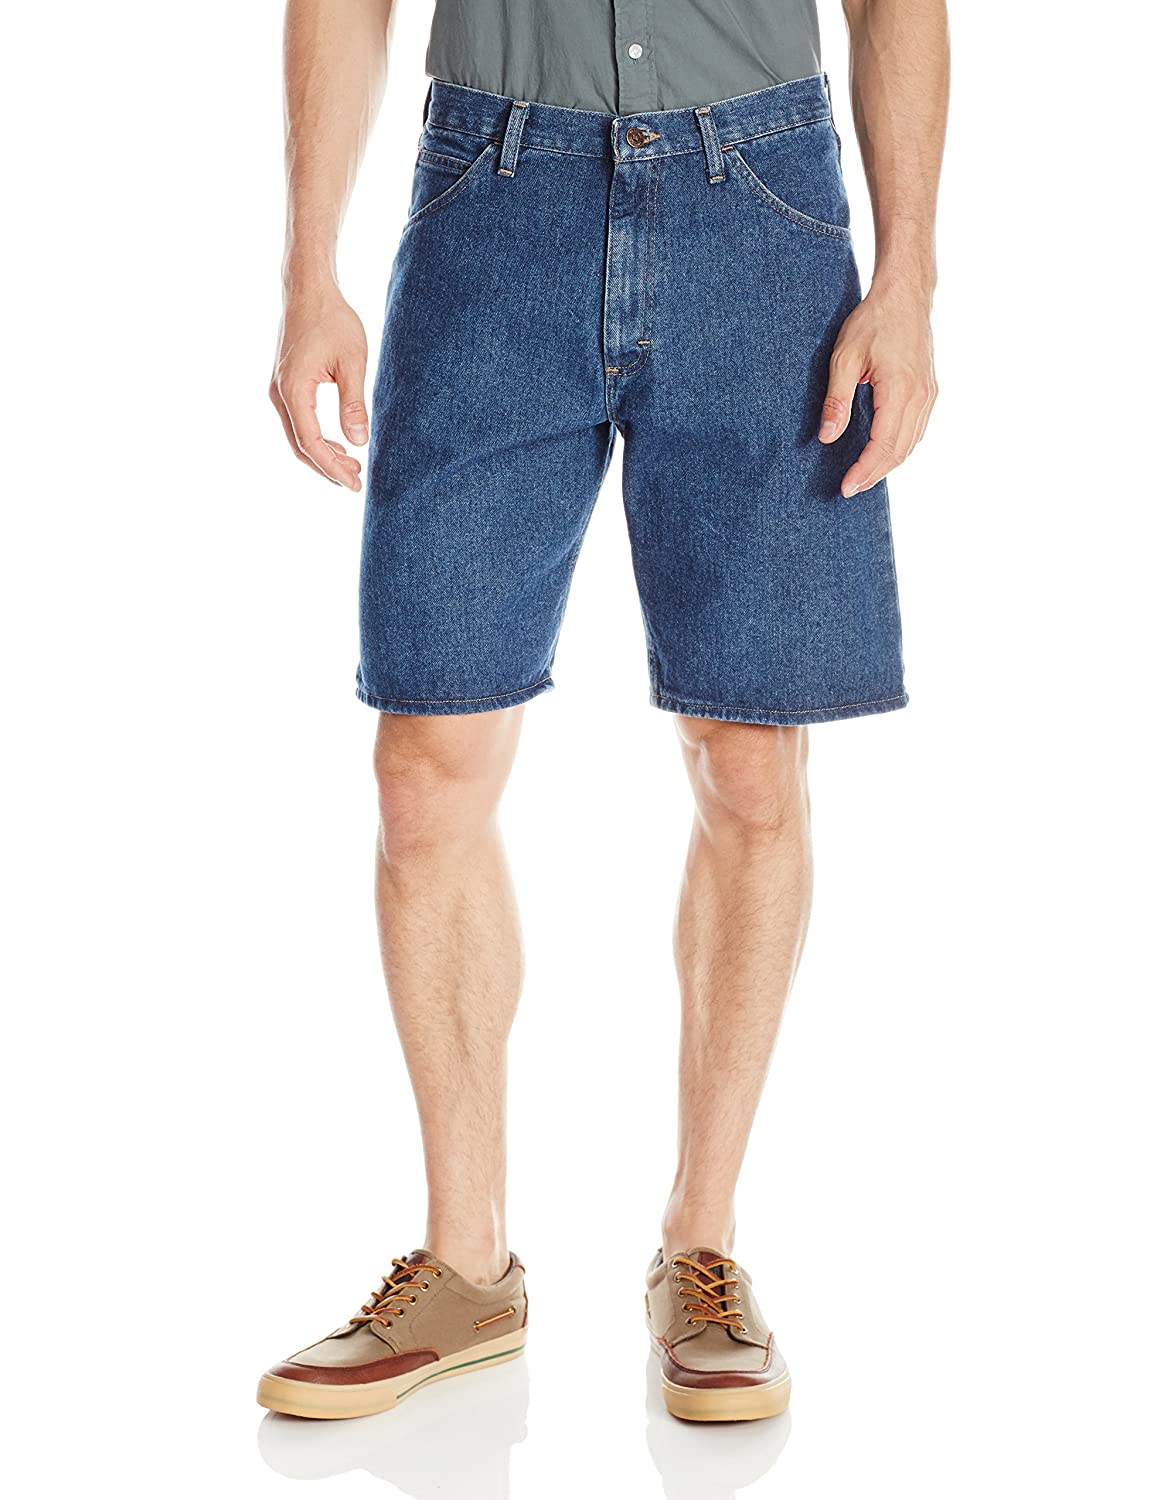 Wrangler mens Big & Tall Classic Relaxed Fit Five-pocket Jean Short Wrangler Authentics ZM2S0LSB